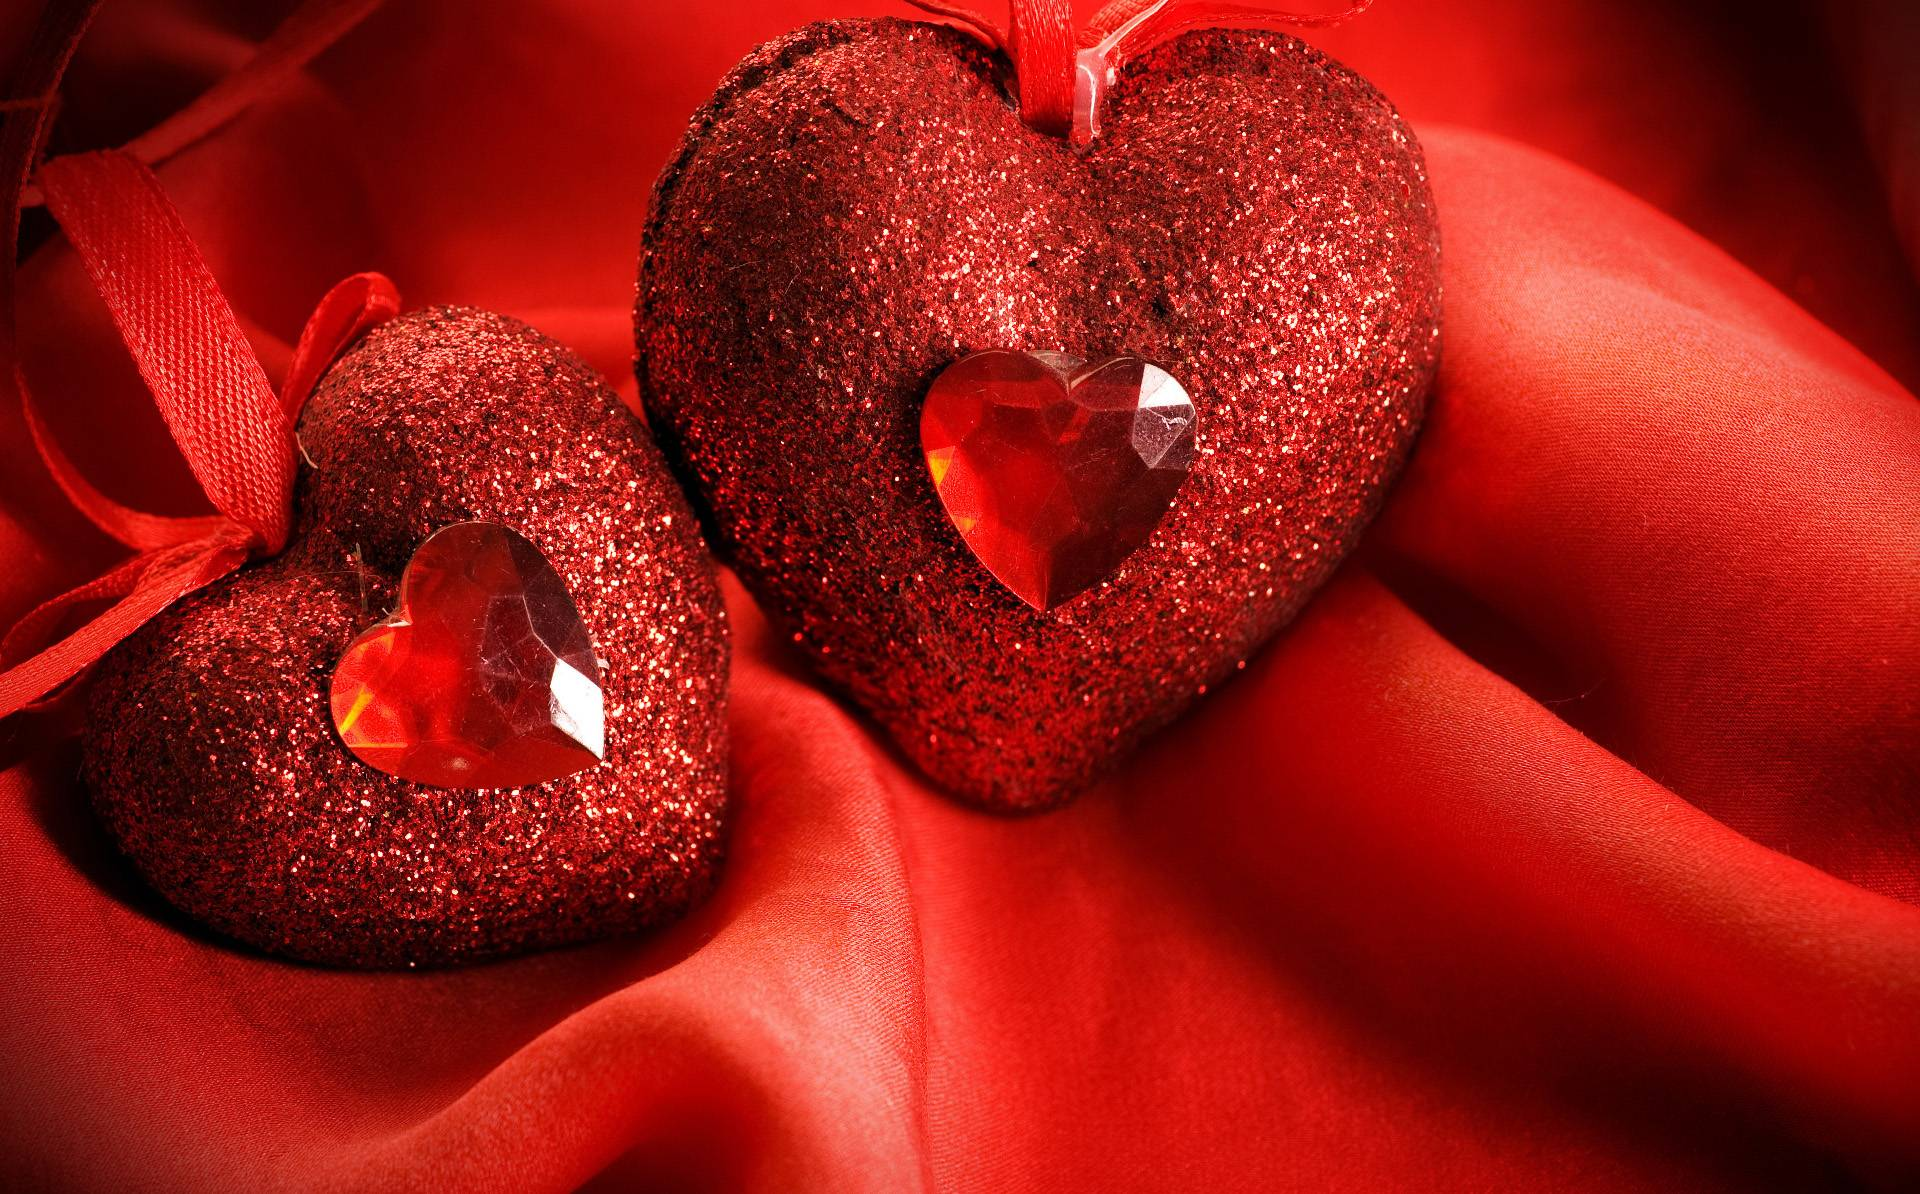 Beautiful Love Wallpaper Hd: Love Heart Wallpapers HD